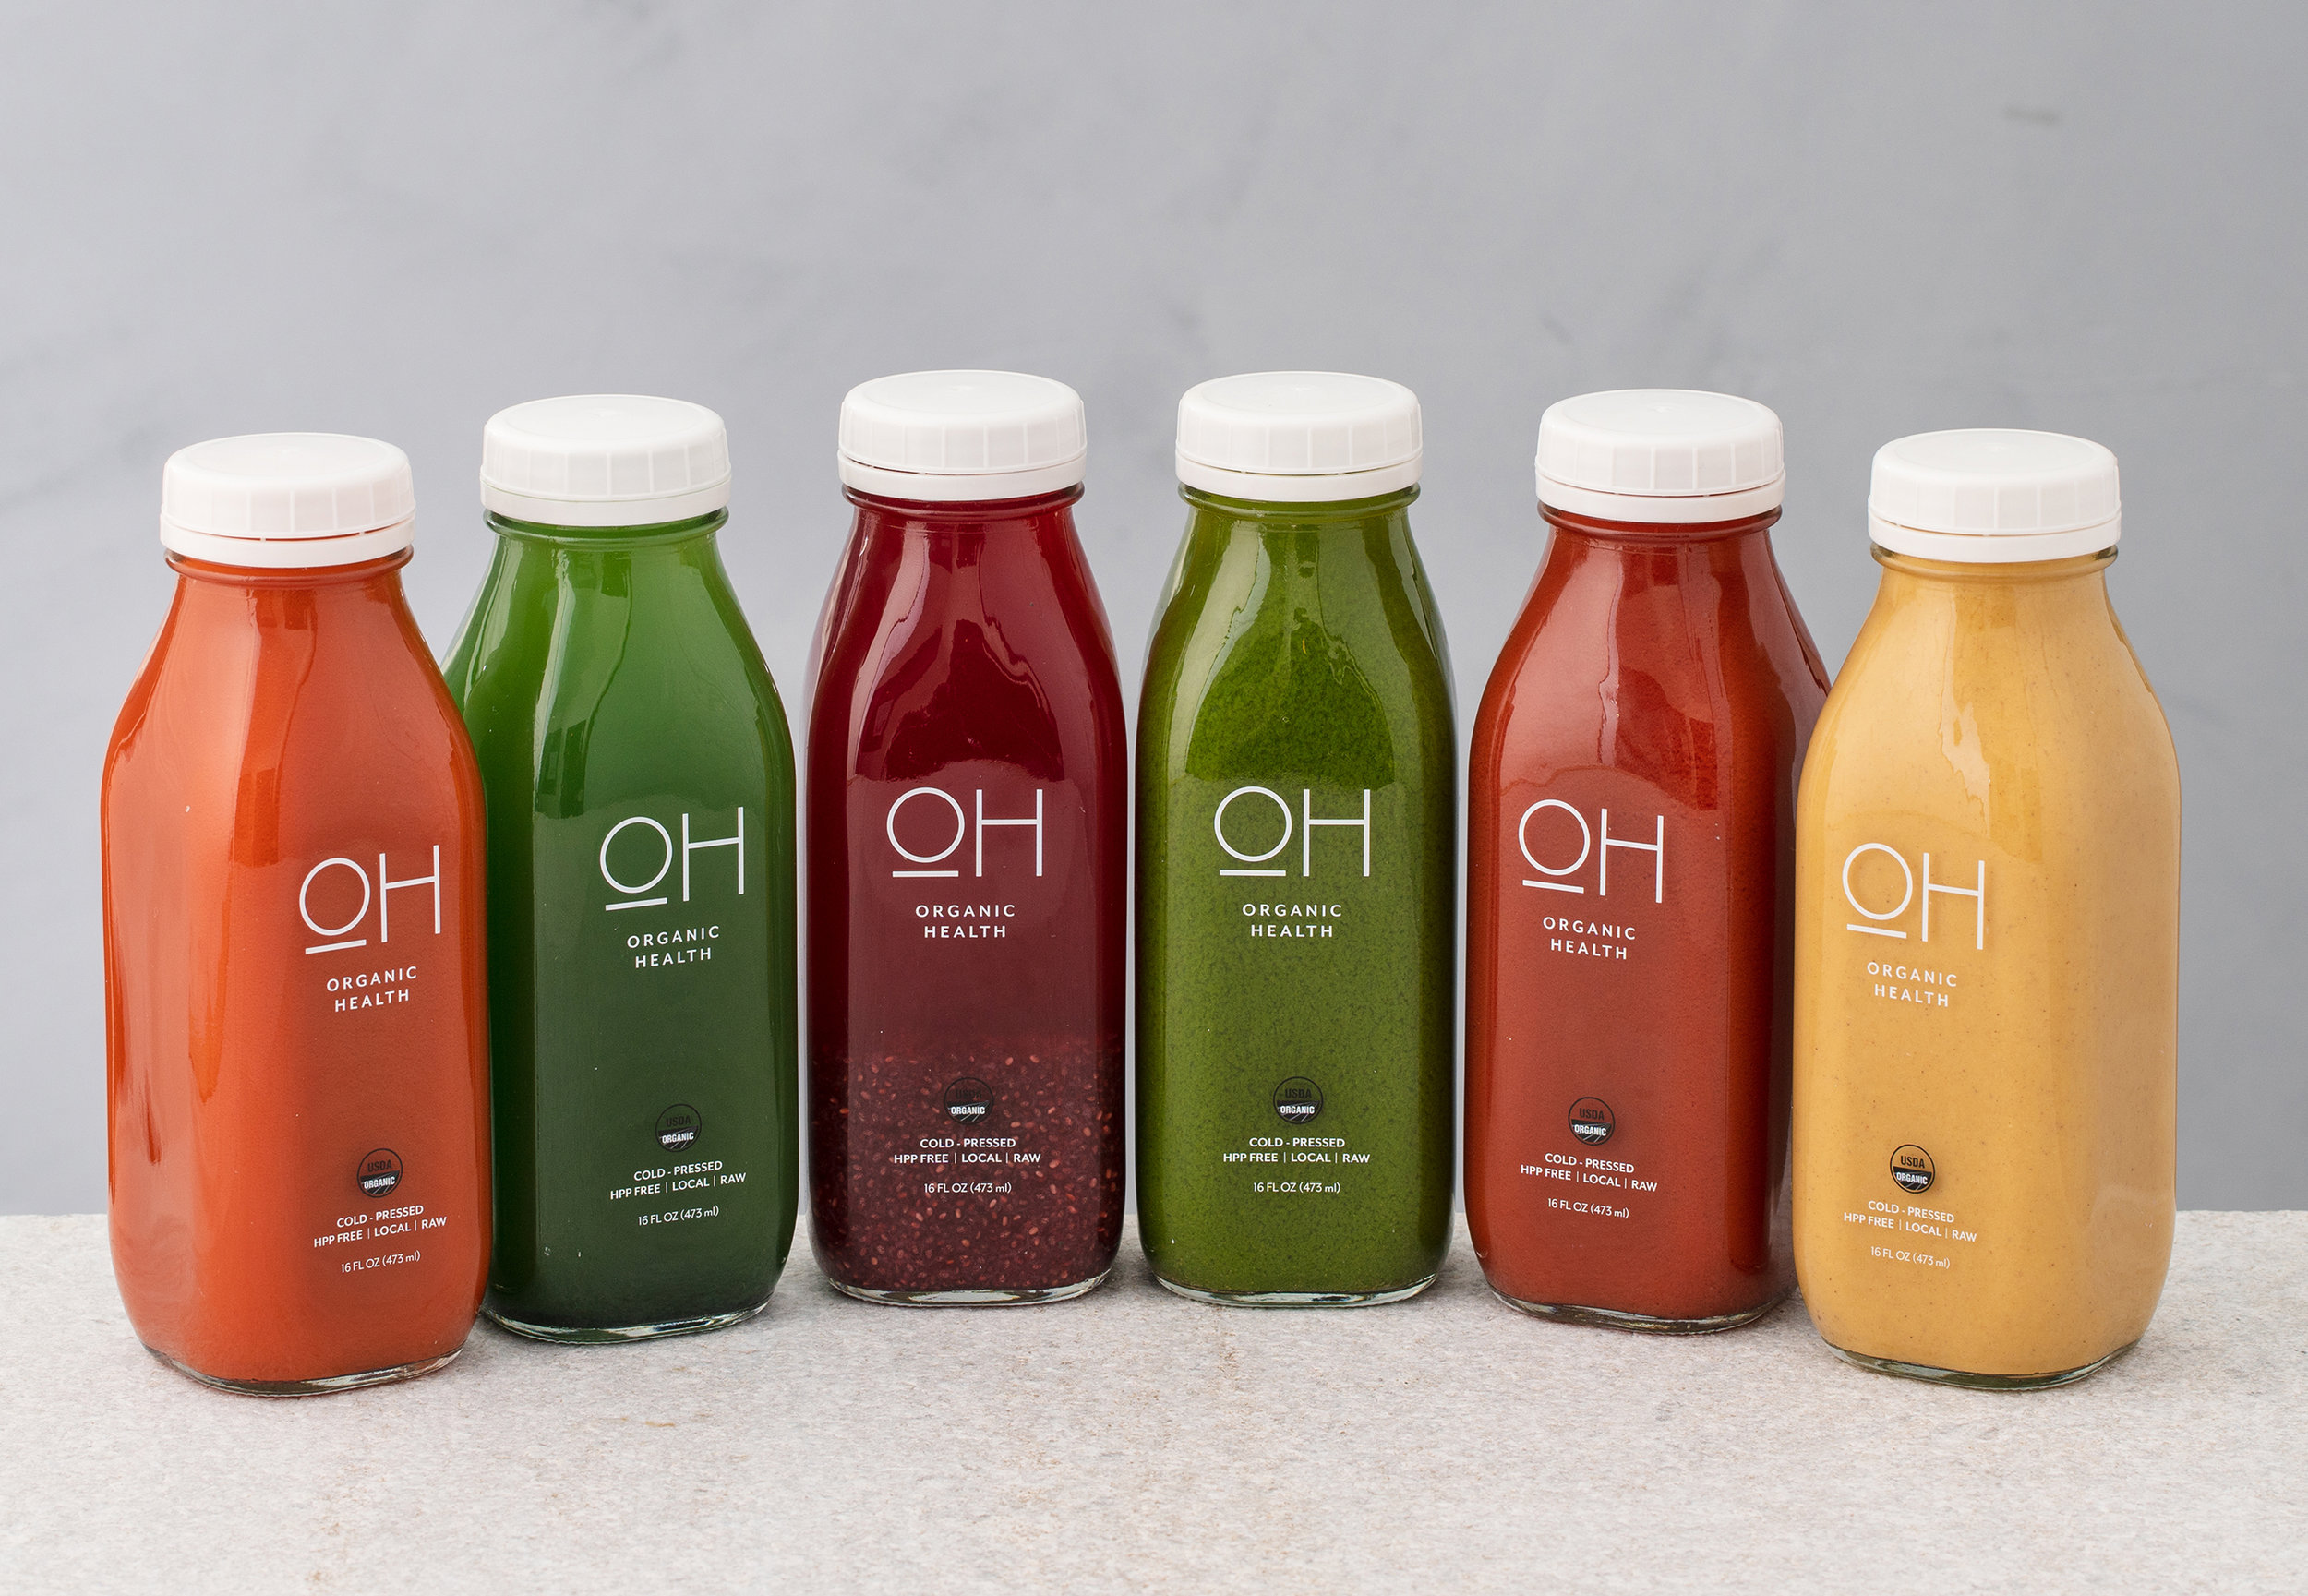 Custom Juice Package - Ready to craft your own cleanse or weekly juice subscription? Experience your own unique combo from our variety of different juices!See our juice menu click here